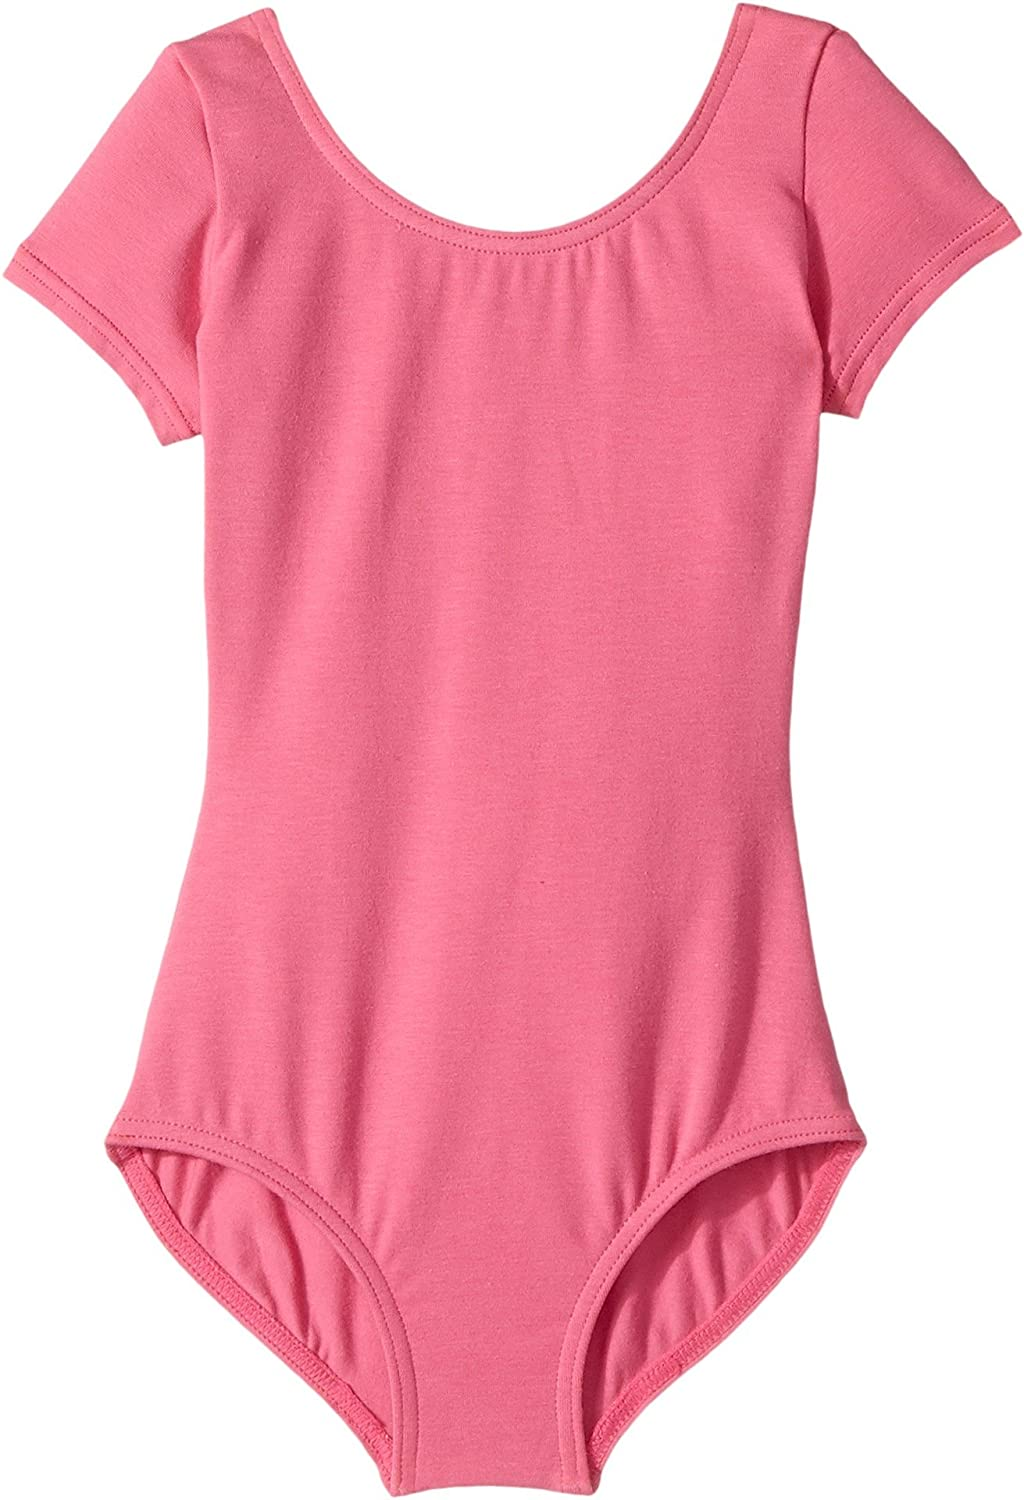 Capezio Kids Baby Girl's Classic Short Sleeve Leotard (Toddler/Little Kids/Big Kids) Candy Pink Jumpsuit